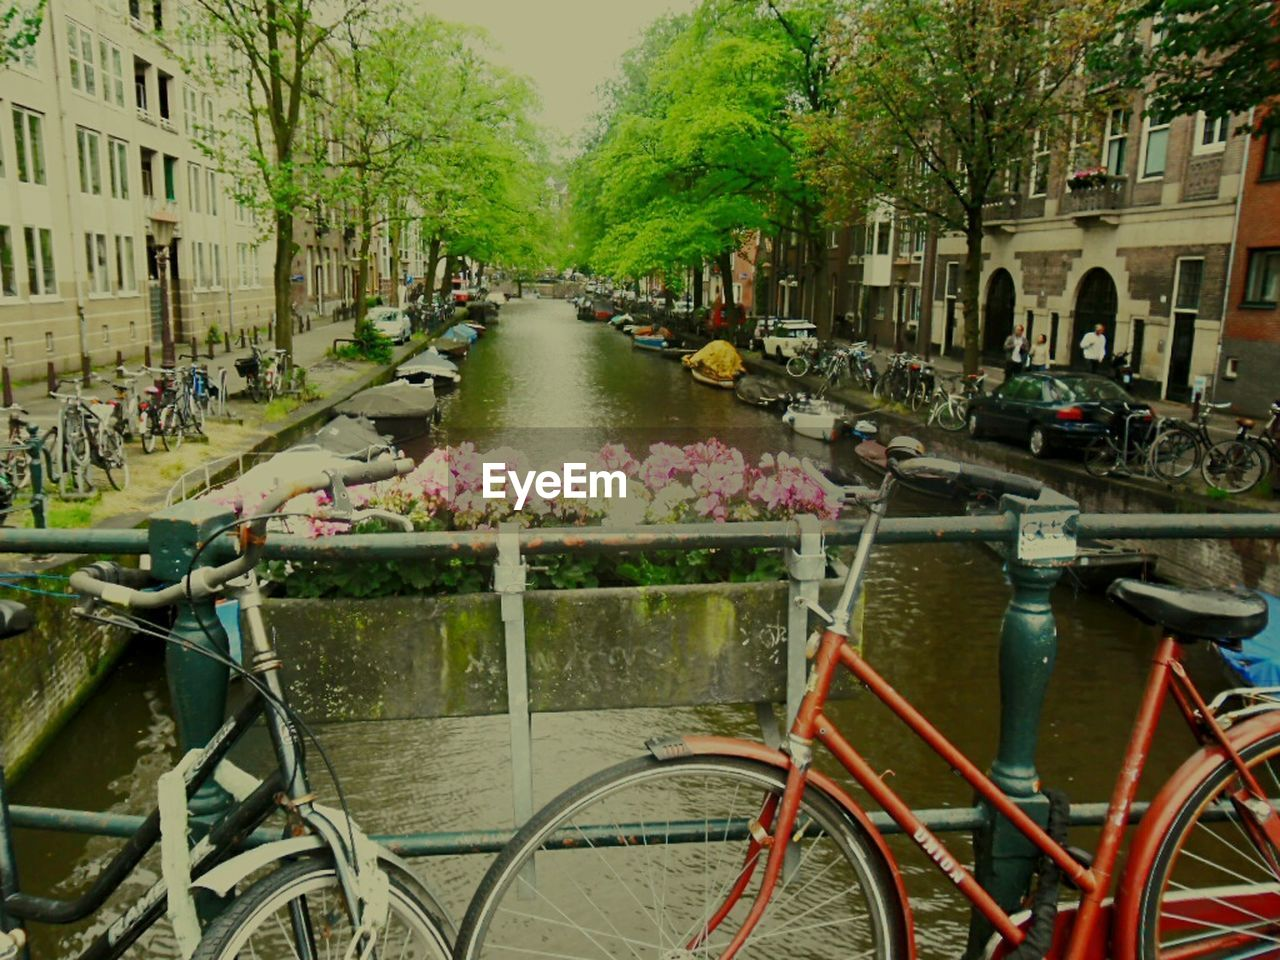 architecture, building exterior, transportation, built structure, mode of transport, outdoors, day, city, canal, water, bicycle, land vehicle, tree, nature, no people